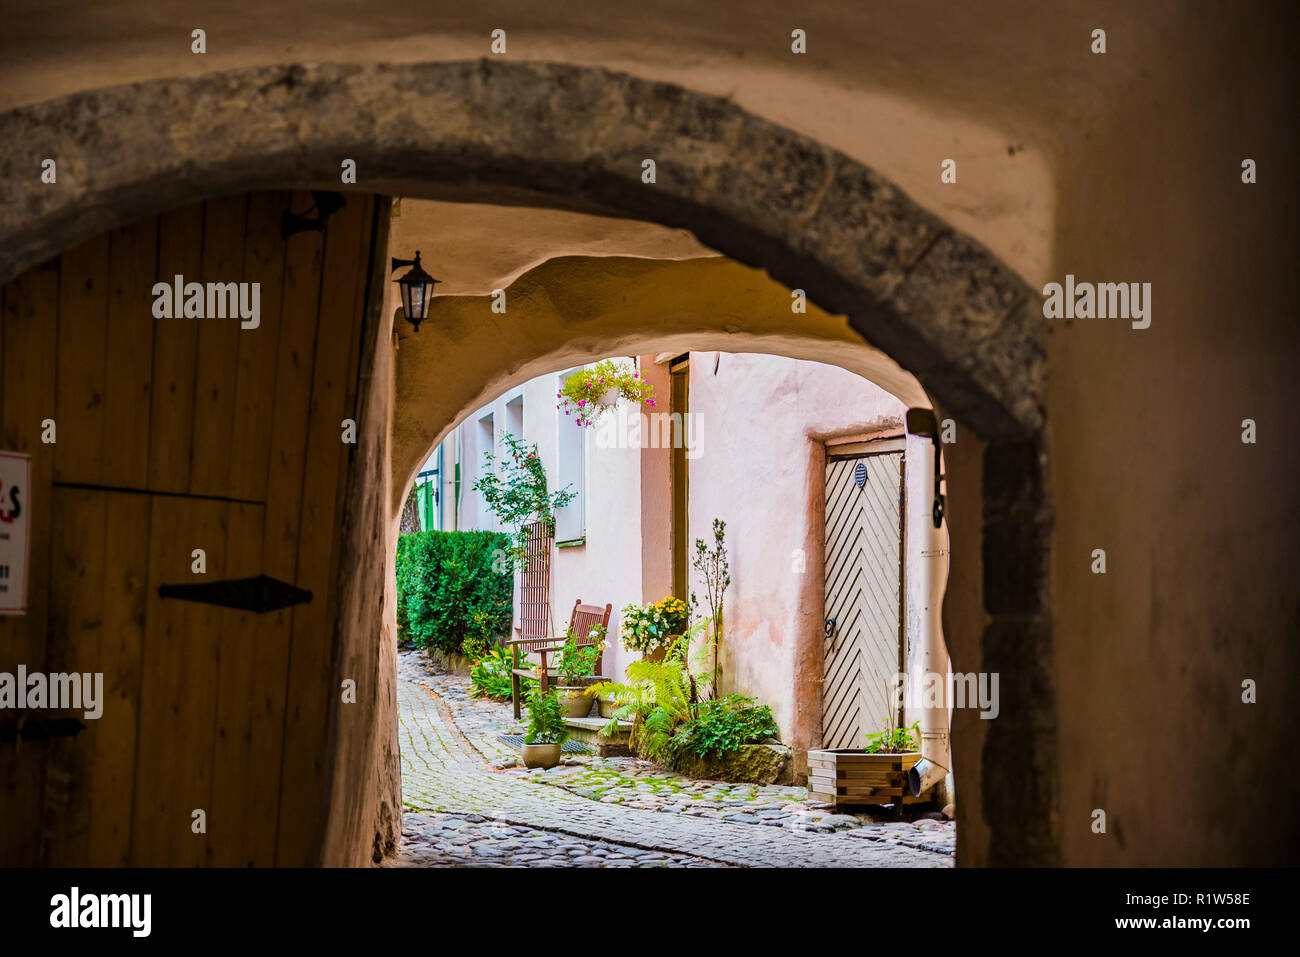 The buildings often have courtyards with business. Tallinn, Harju County, Estonia, Baltic states, Europe. - Stock Image